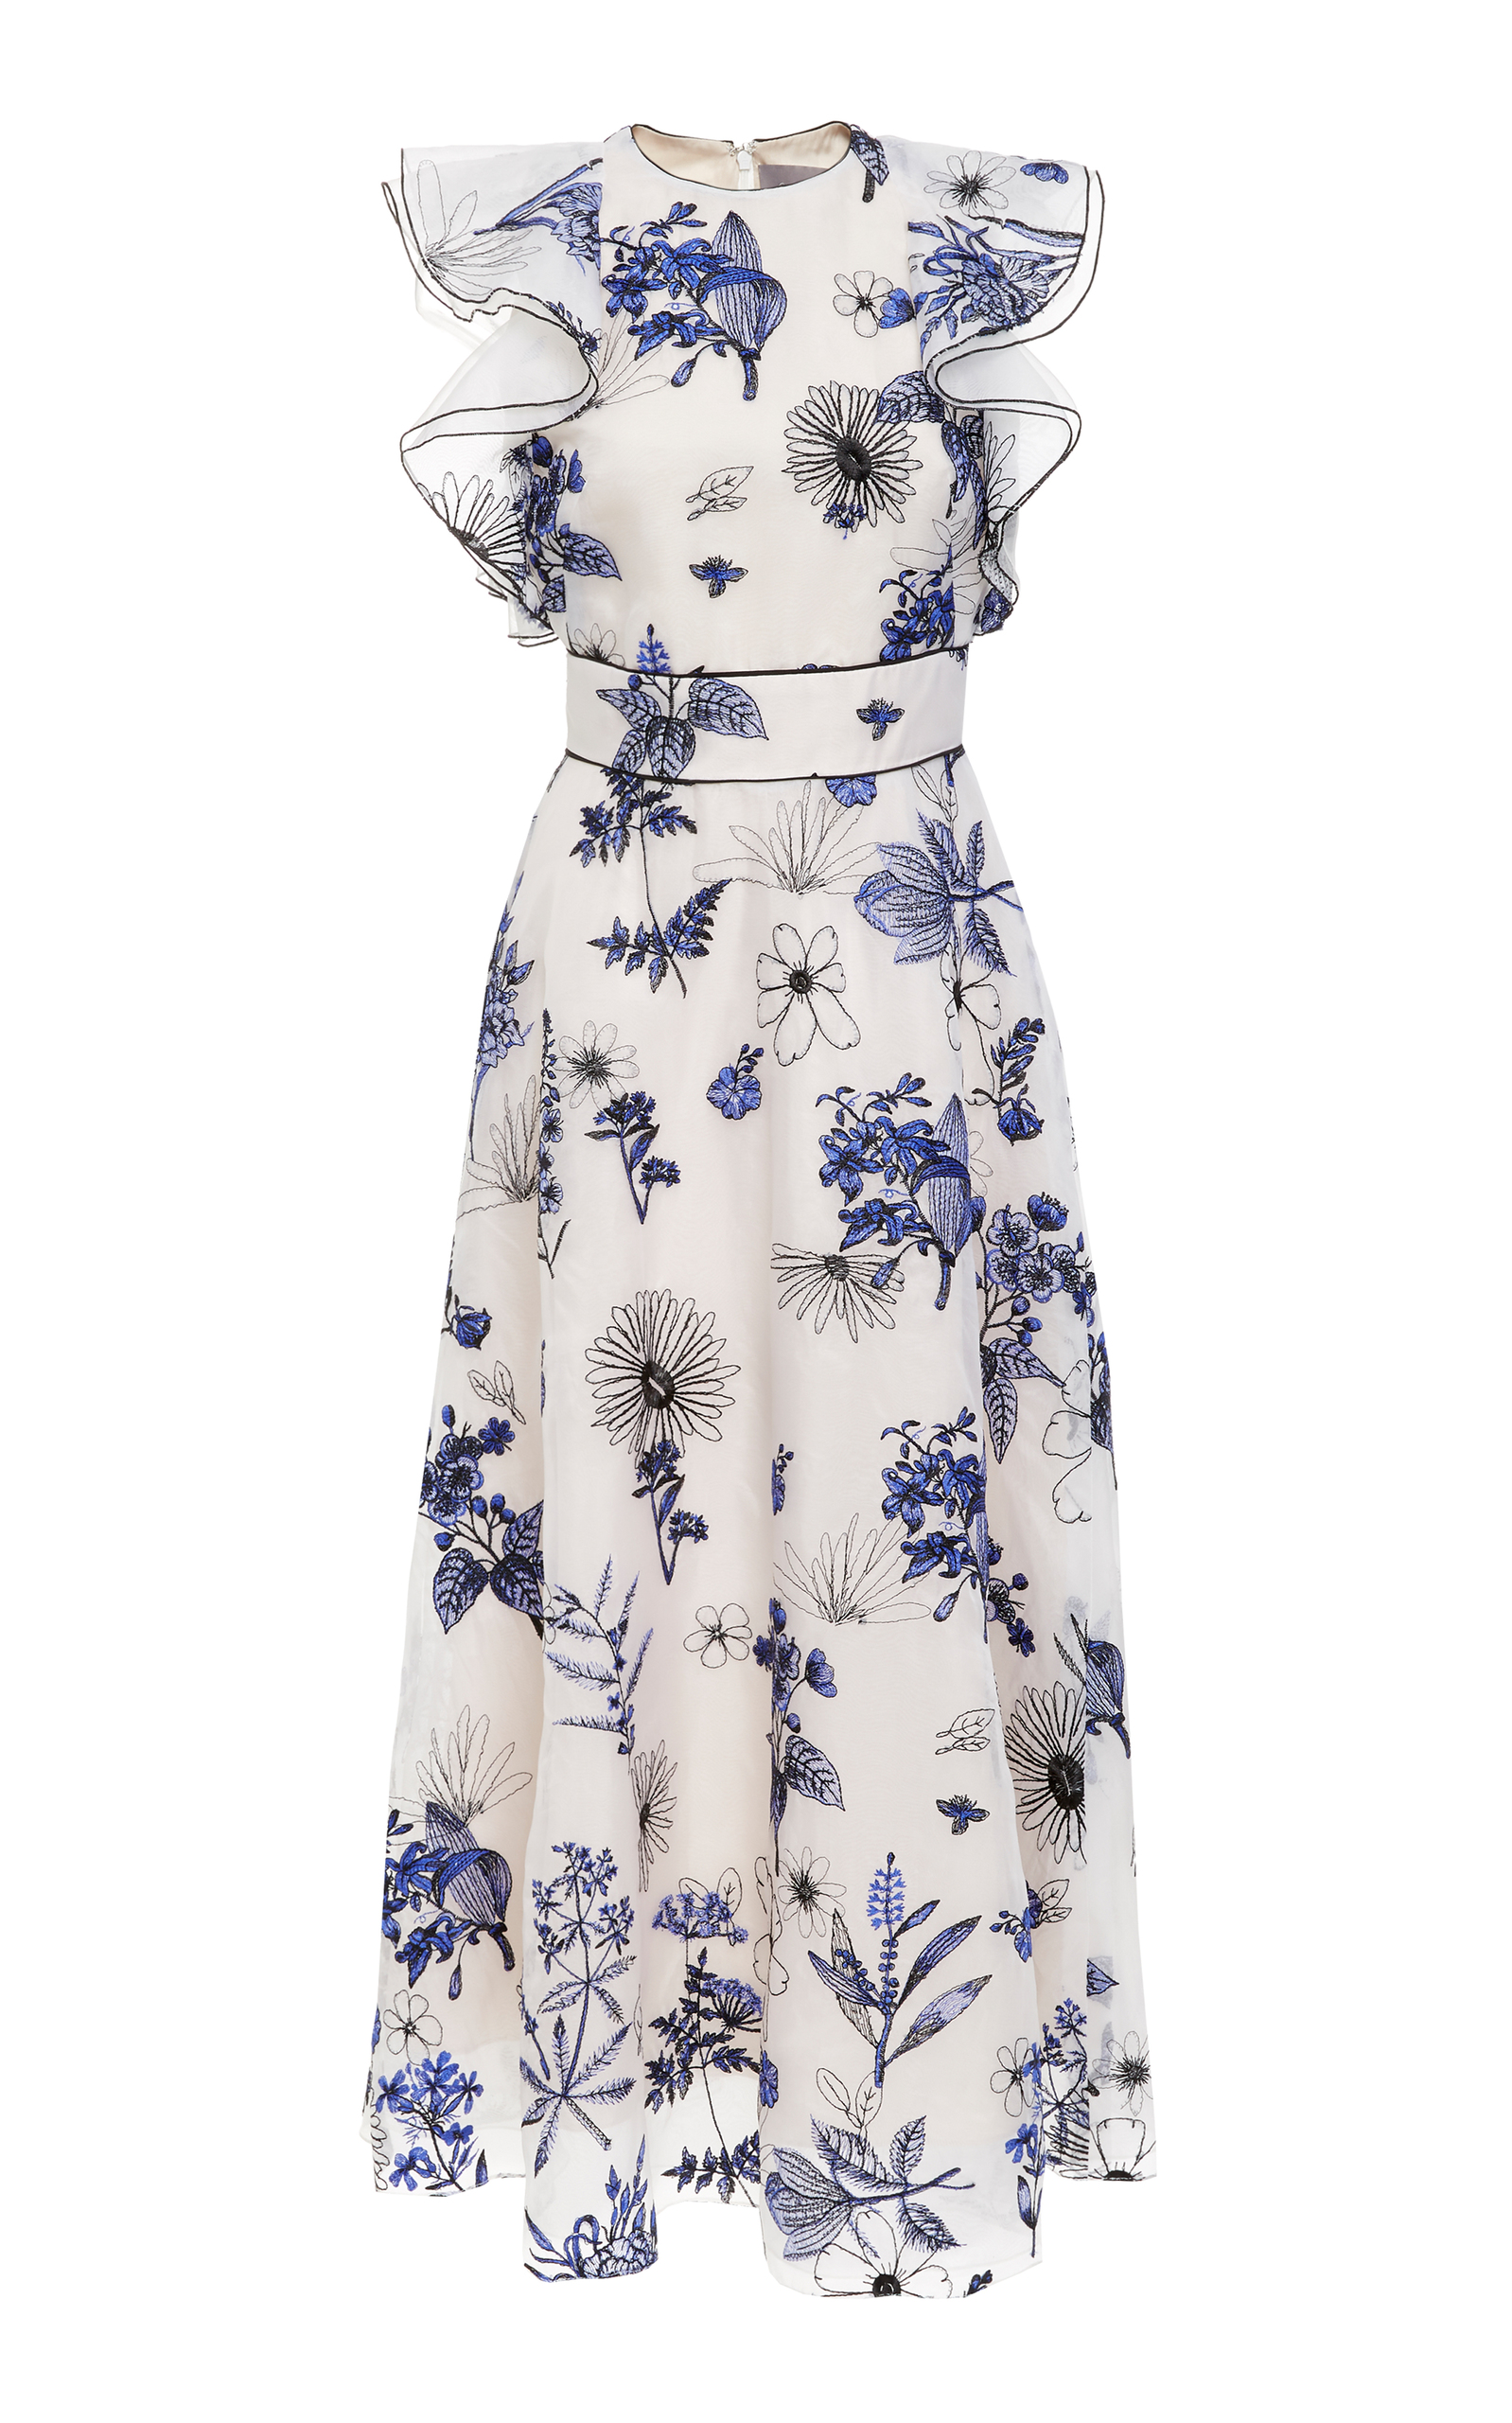 Sleeveless Floral-Embroidered Fit-And-Flare Tea-Length Dress, Multi